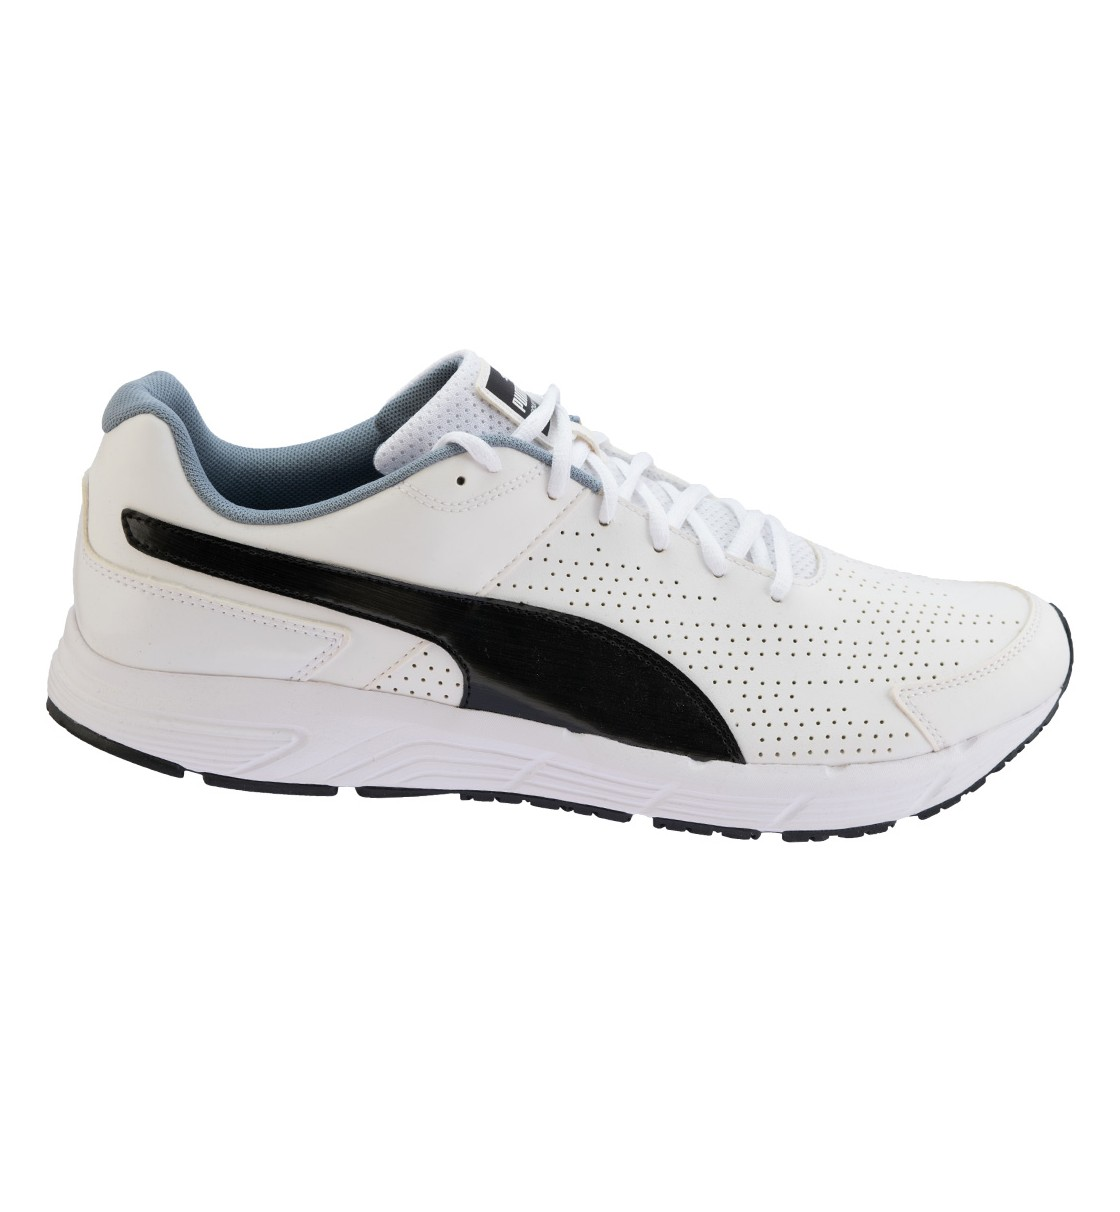 Puma SEQUENCE SL MEN'S